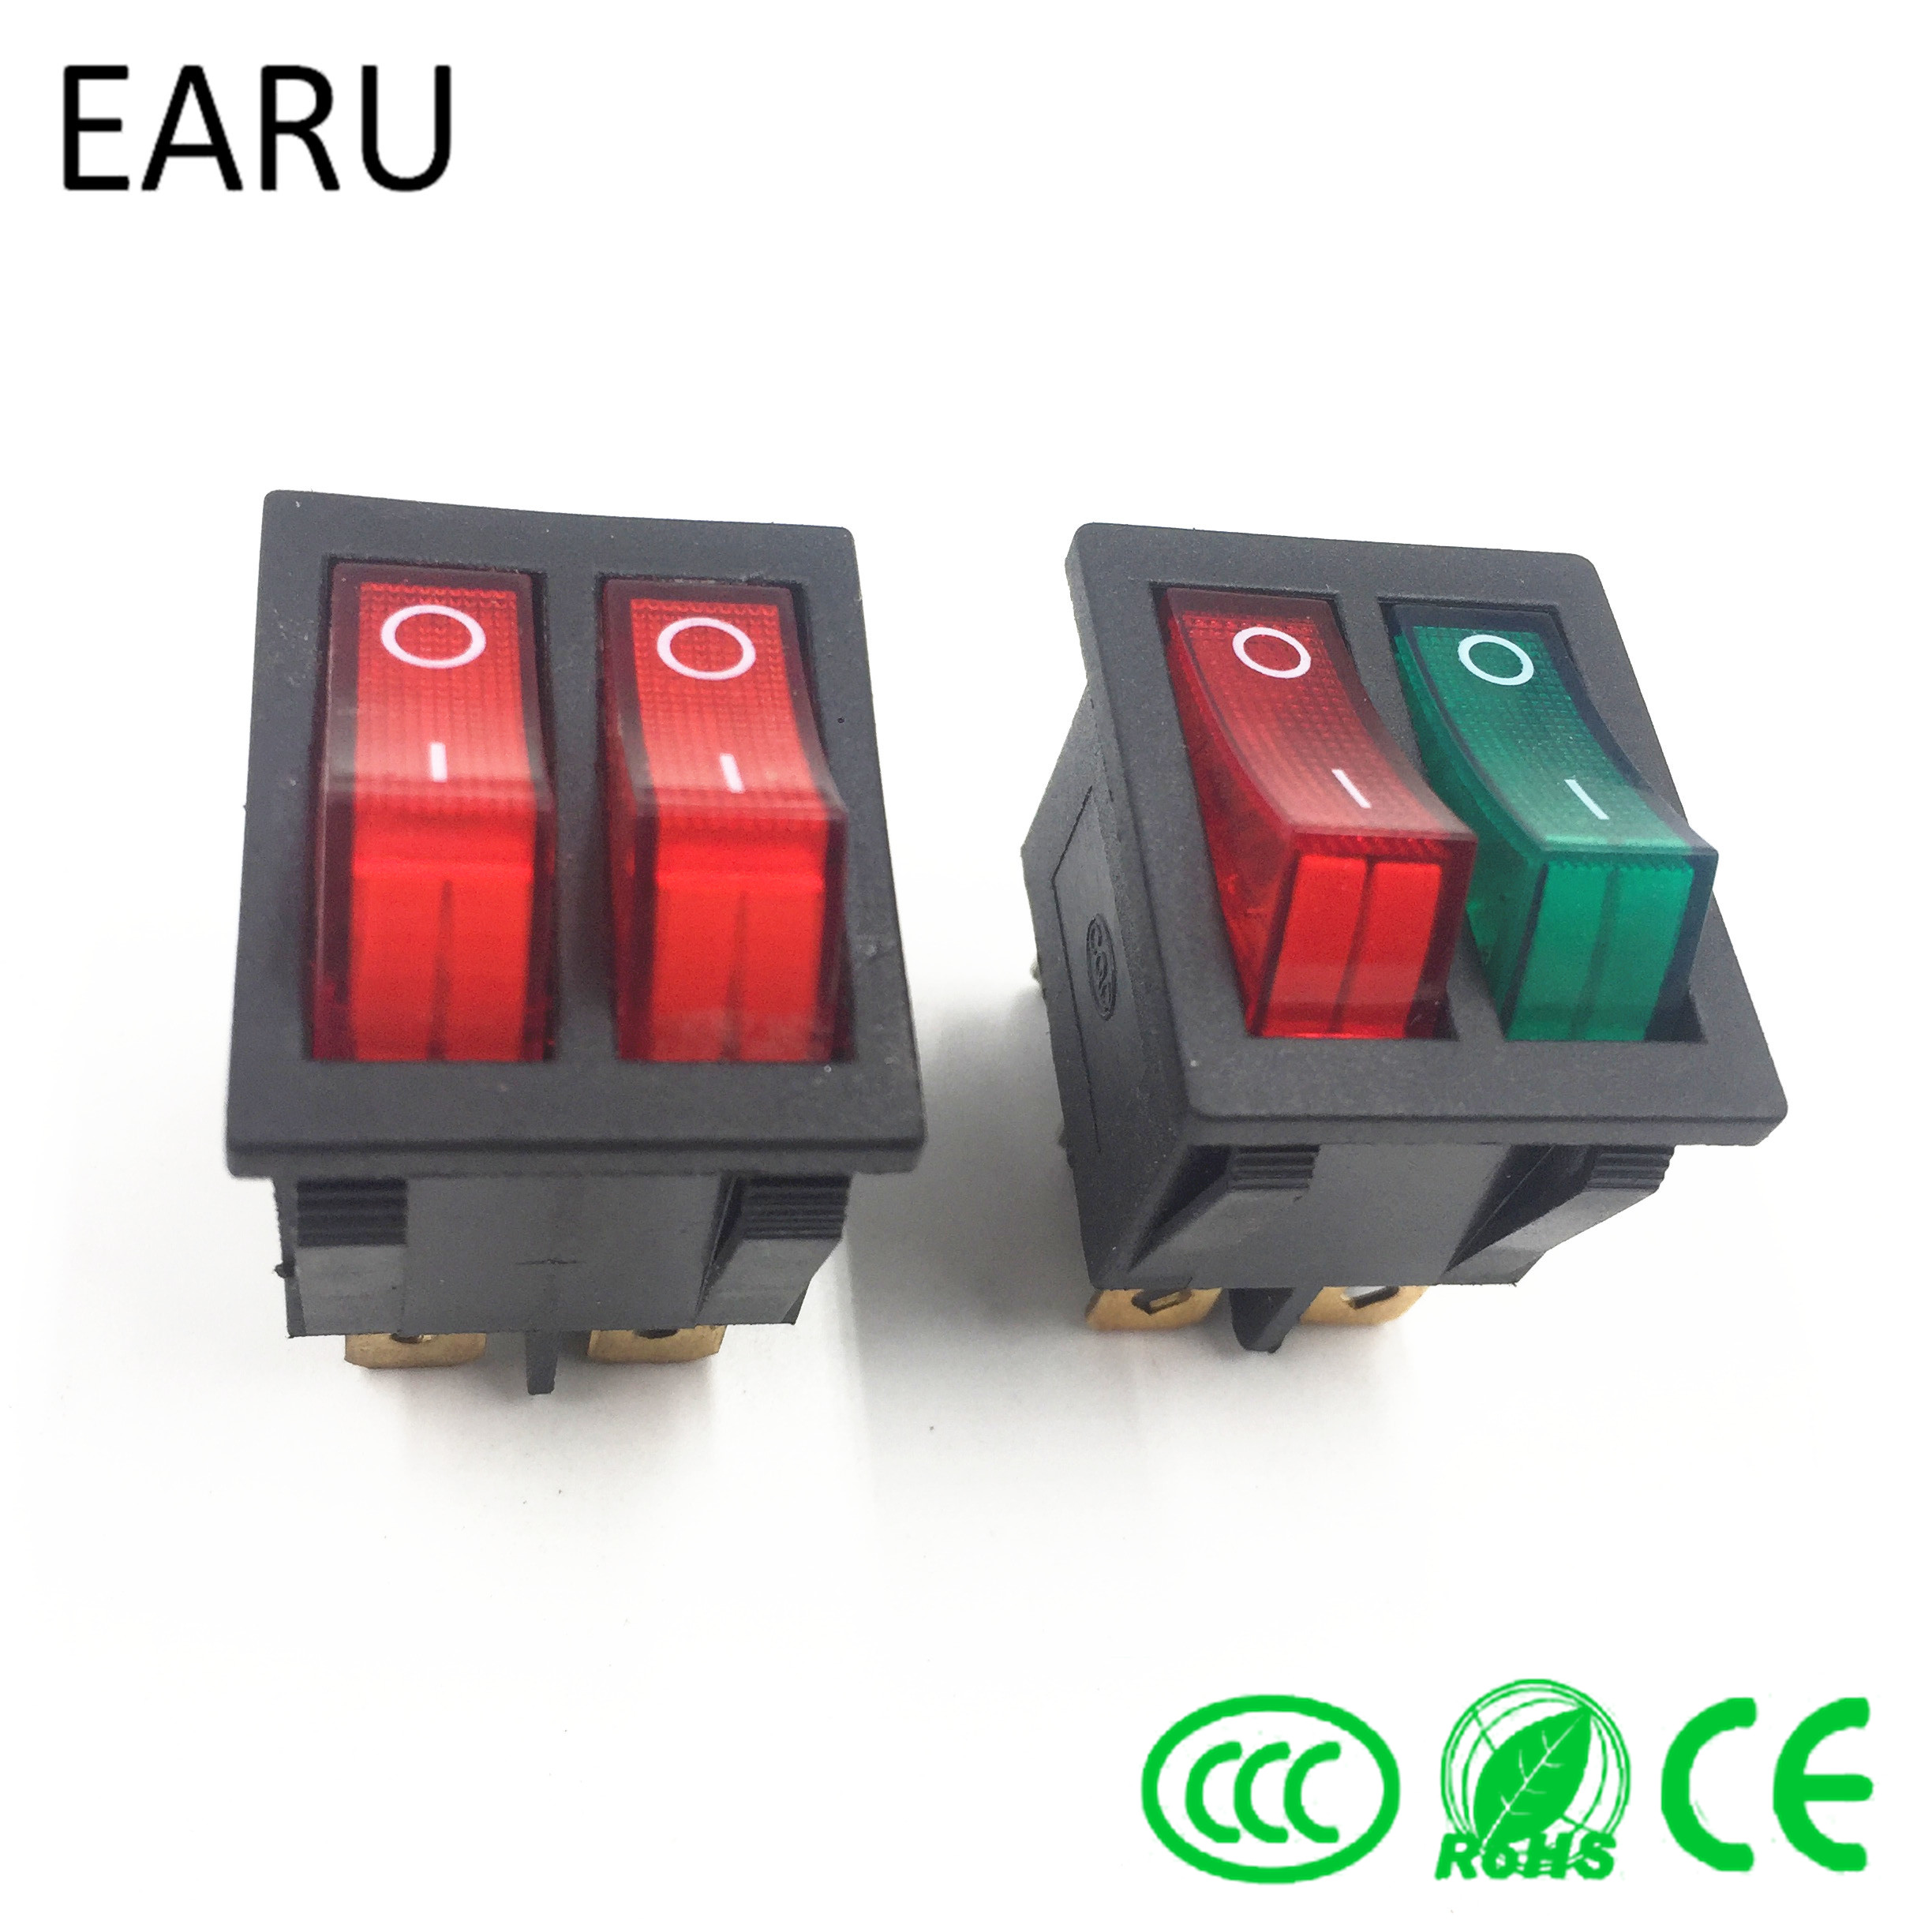 1pc DIY Model KCD3 Double Boat Rocker Switch Toggle 6 Pin On-Off With Green Red Light 20A 125VAC Factory Online Wholesale Hot шины nokian hakka blue 205 50 r17 93v